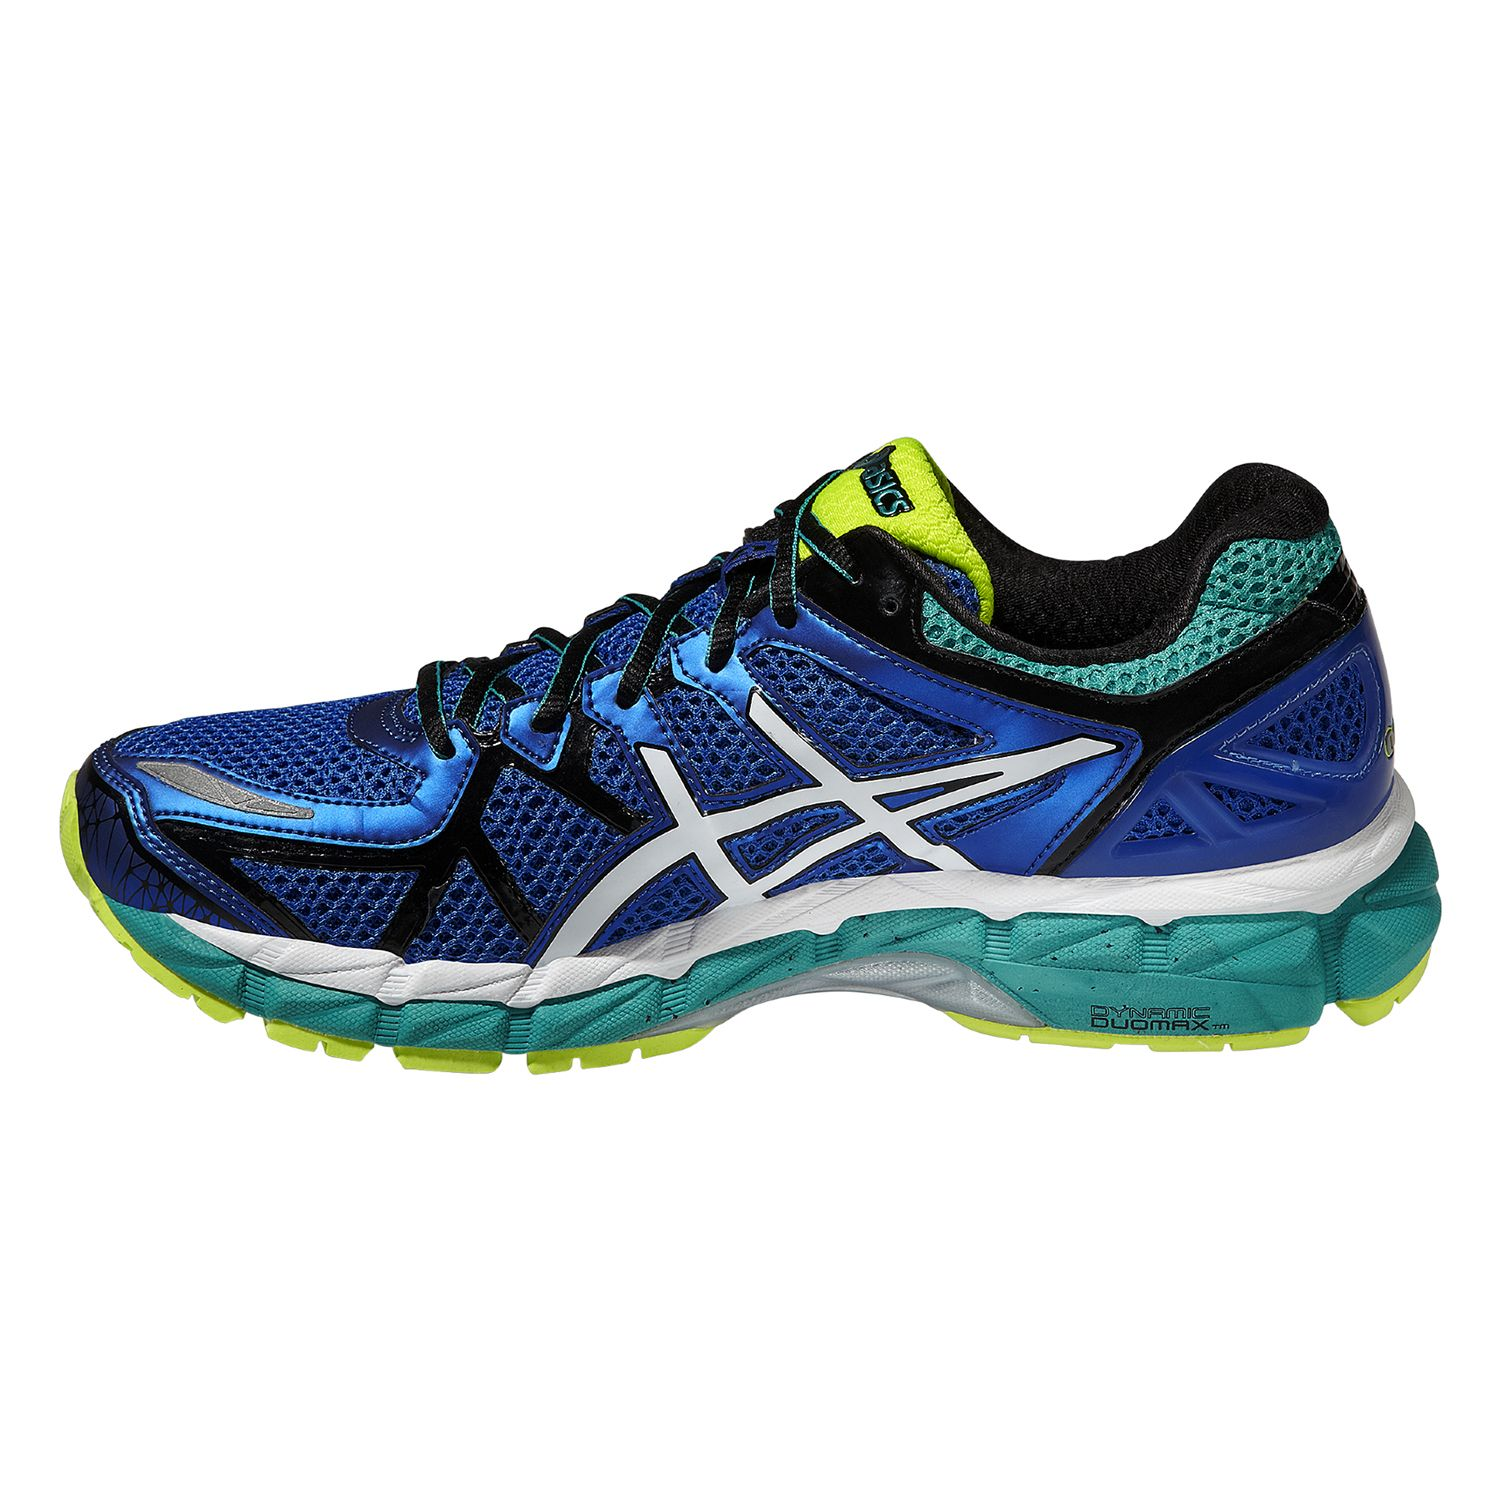 asics gel kayano 21 mens running shoes ss15. Black Bedroom Furniture Sets. Home Design Ideas